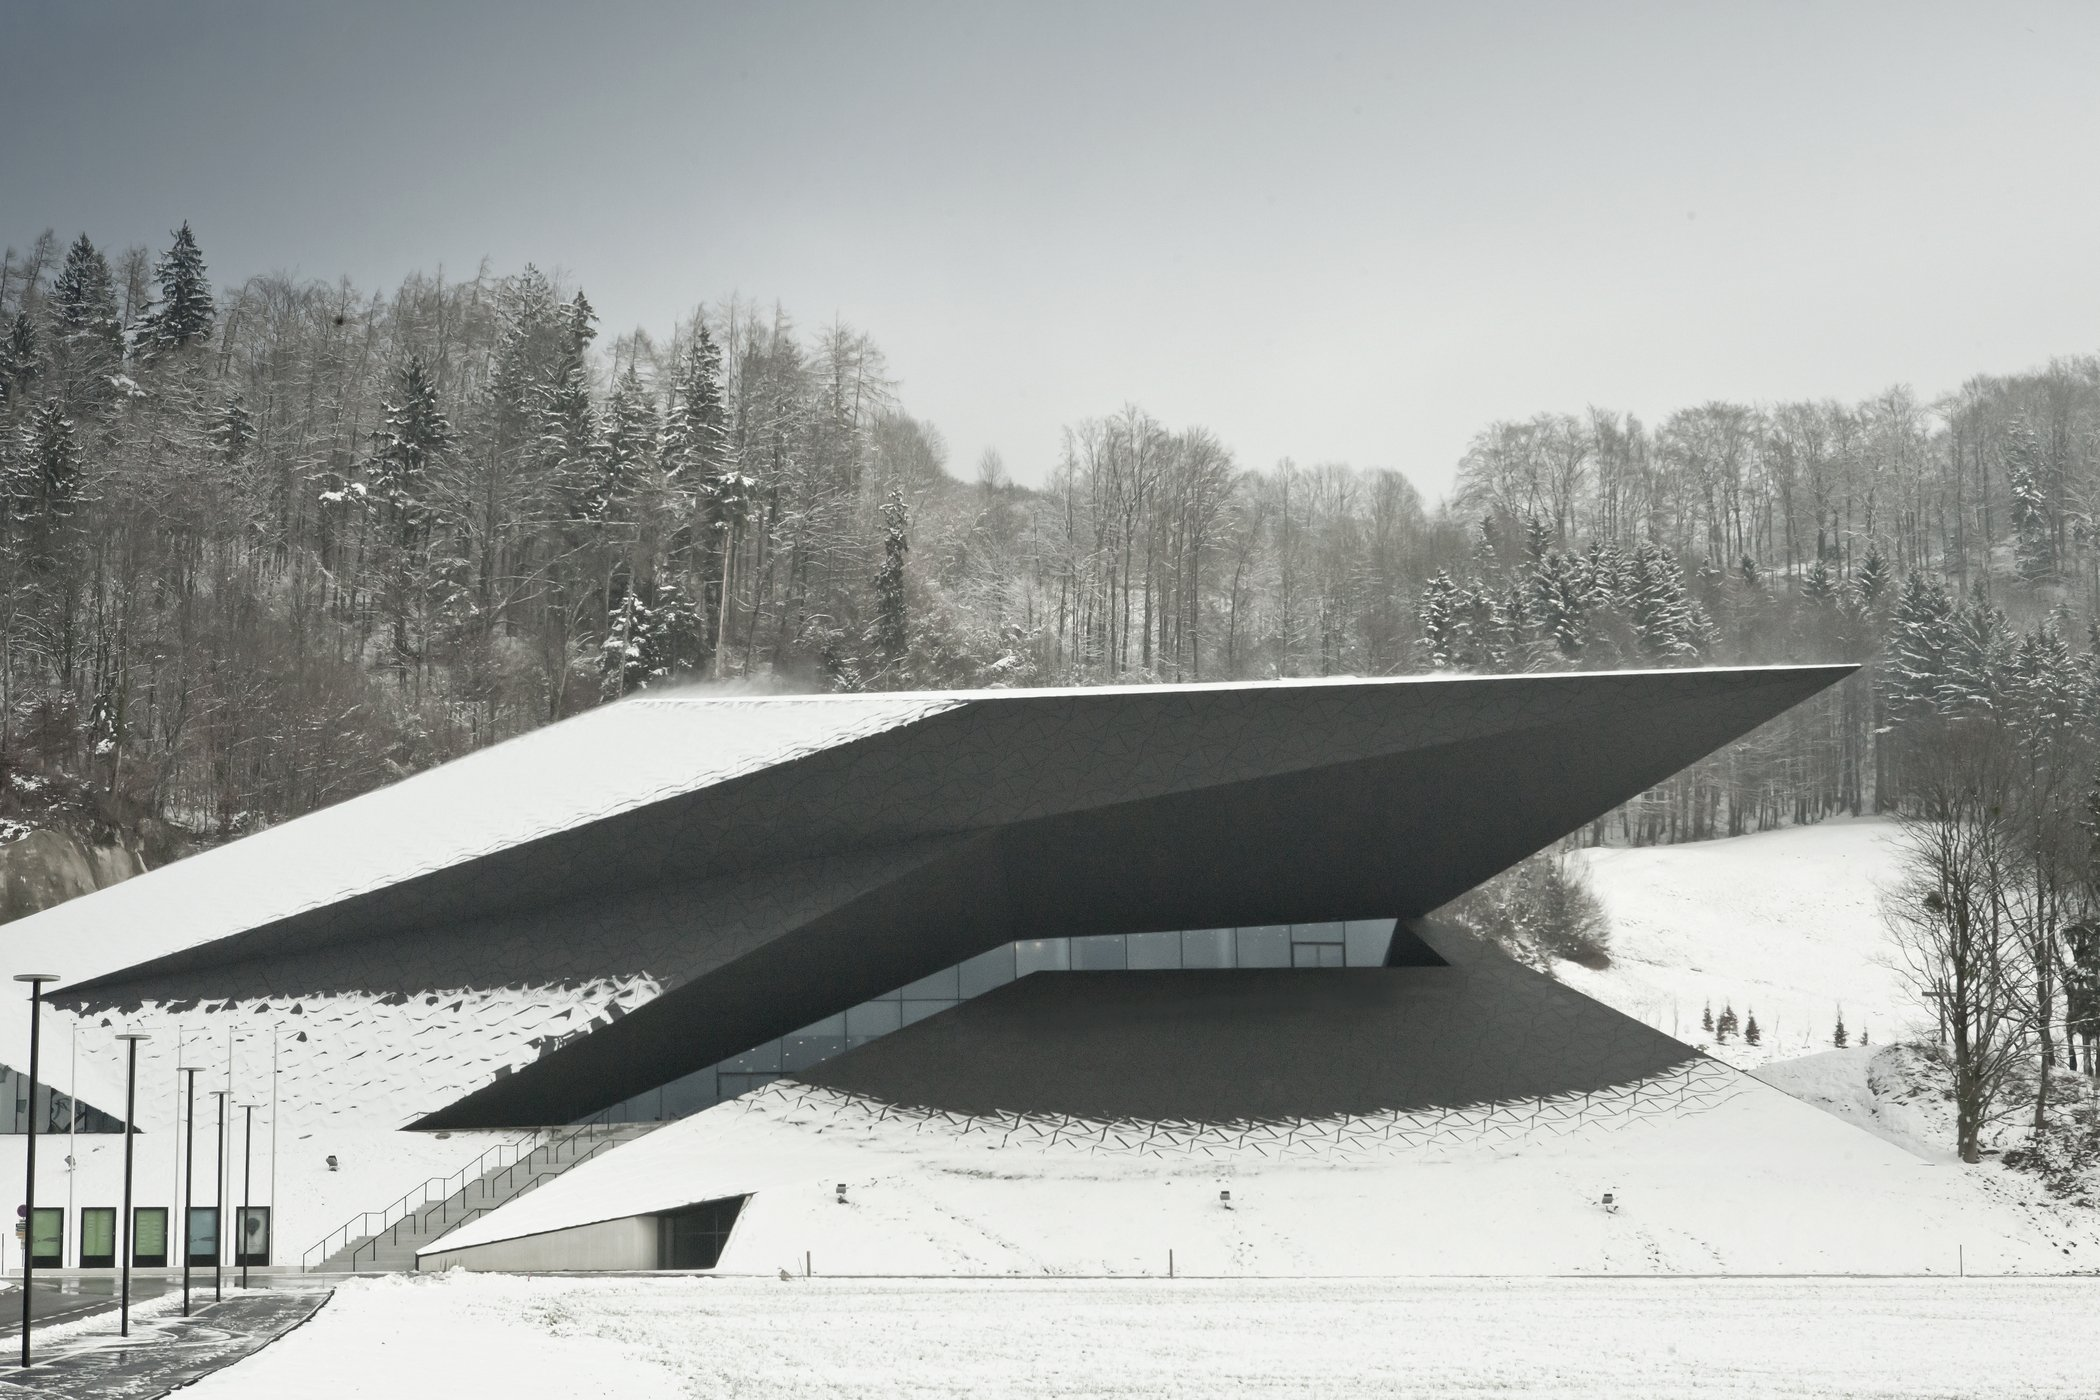 Concert hall for the Tiroler Festspiele, EQUITONE [natura] pro  N073